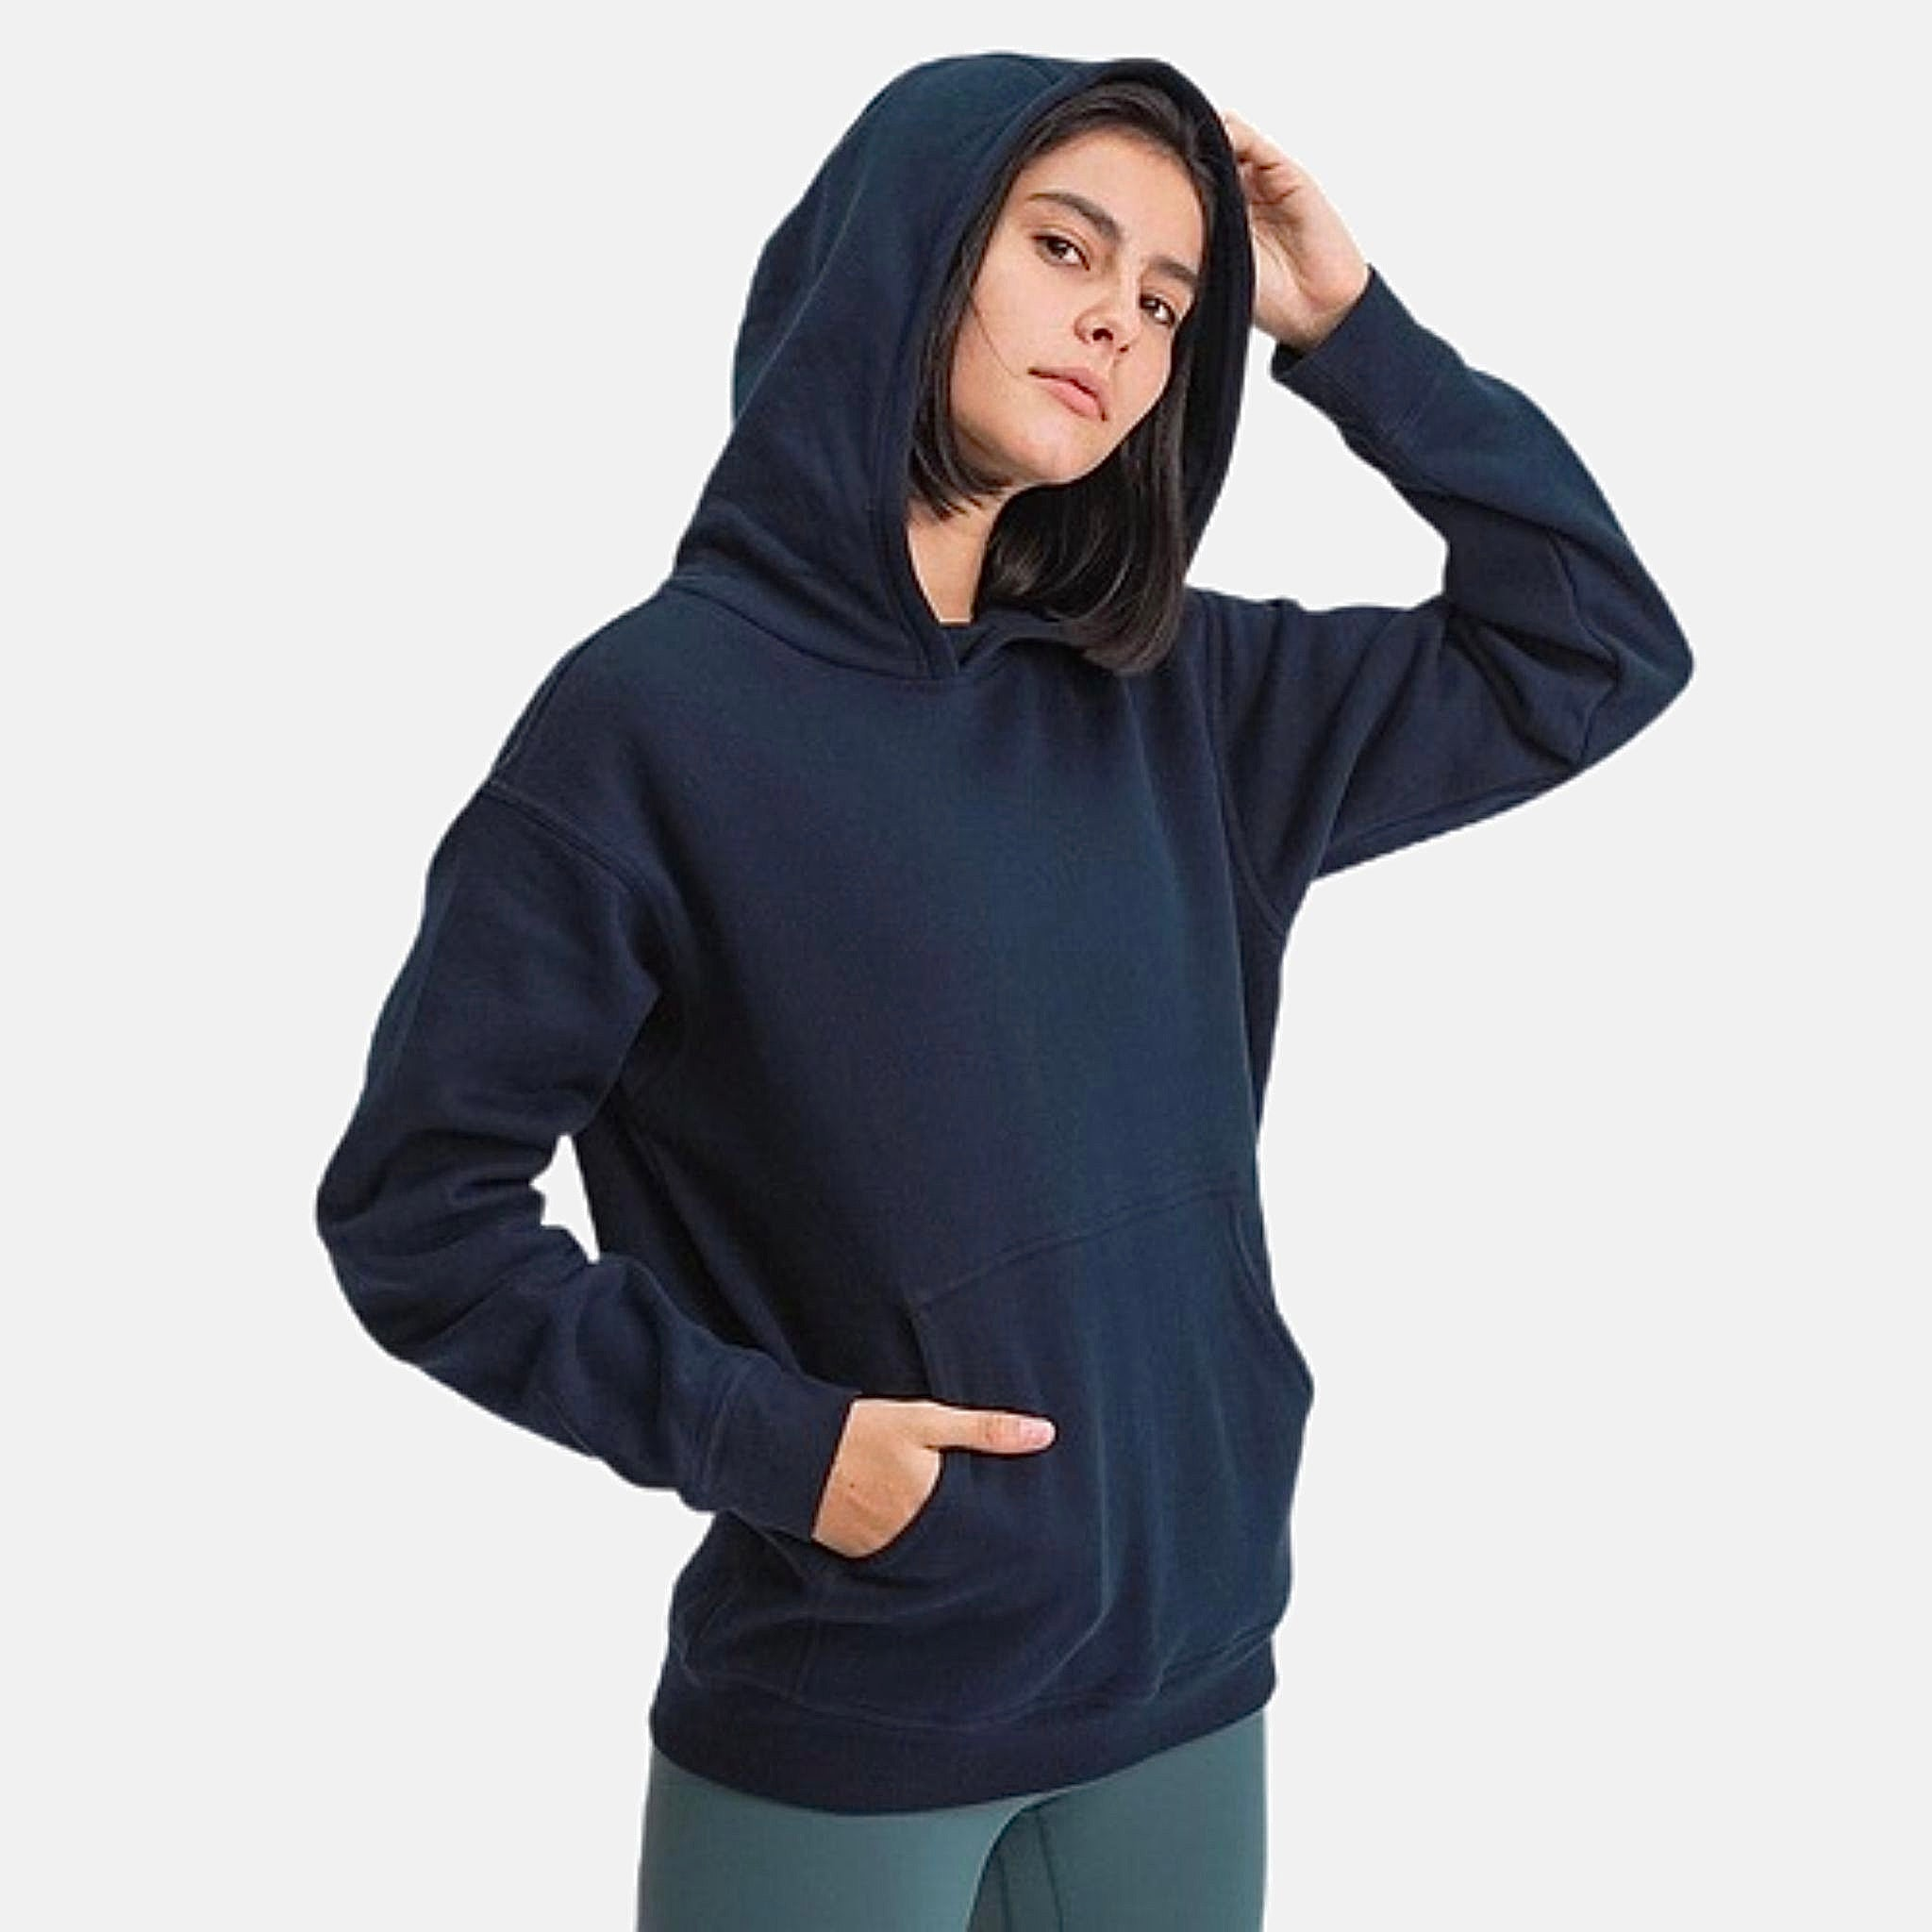 Vintage Fleece Hoodie      Classic Leisure Pocket Warm Hip Length Navy Blue color Hooded Exercise Training Gym Sport Fitness Workout Women's Outdoor miFit Sweatshirts